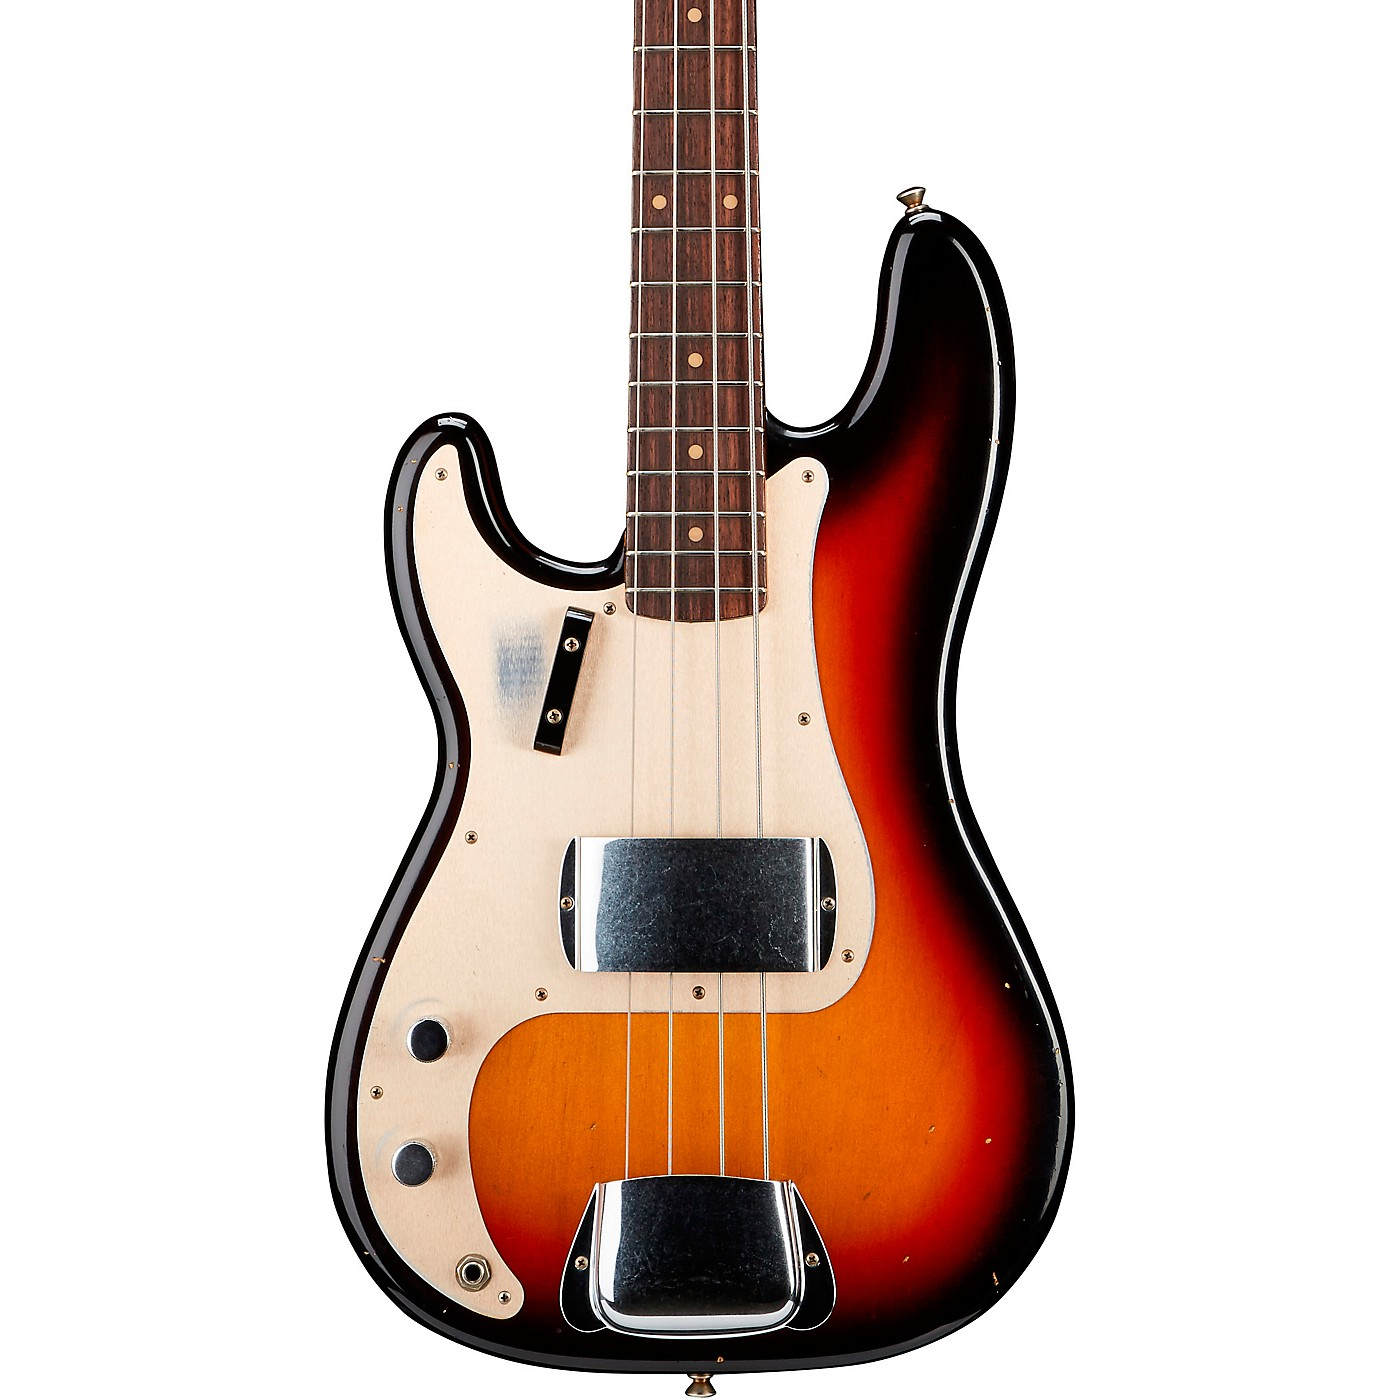 Fender Custom Shop 1959 Precision Bass Journeyman Rosewood Fingerboard Left Handed thumbnail